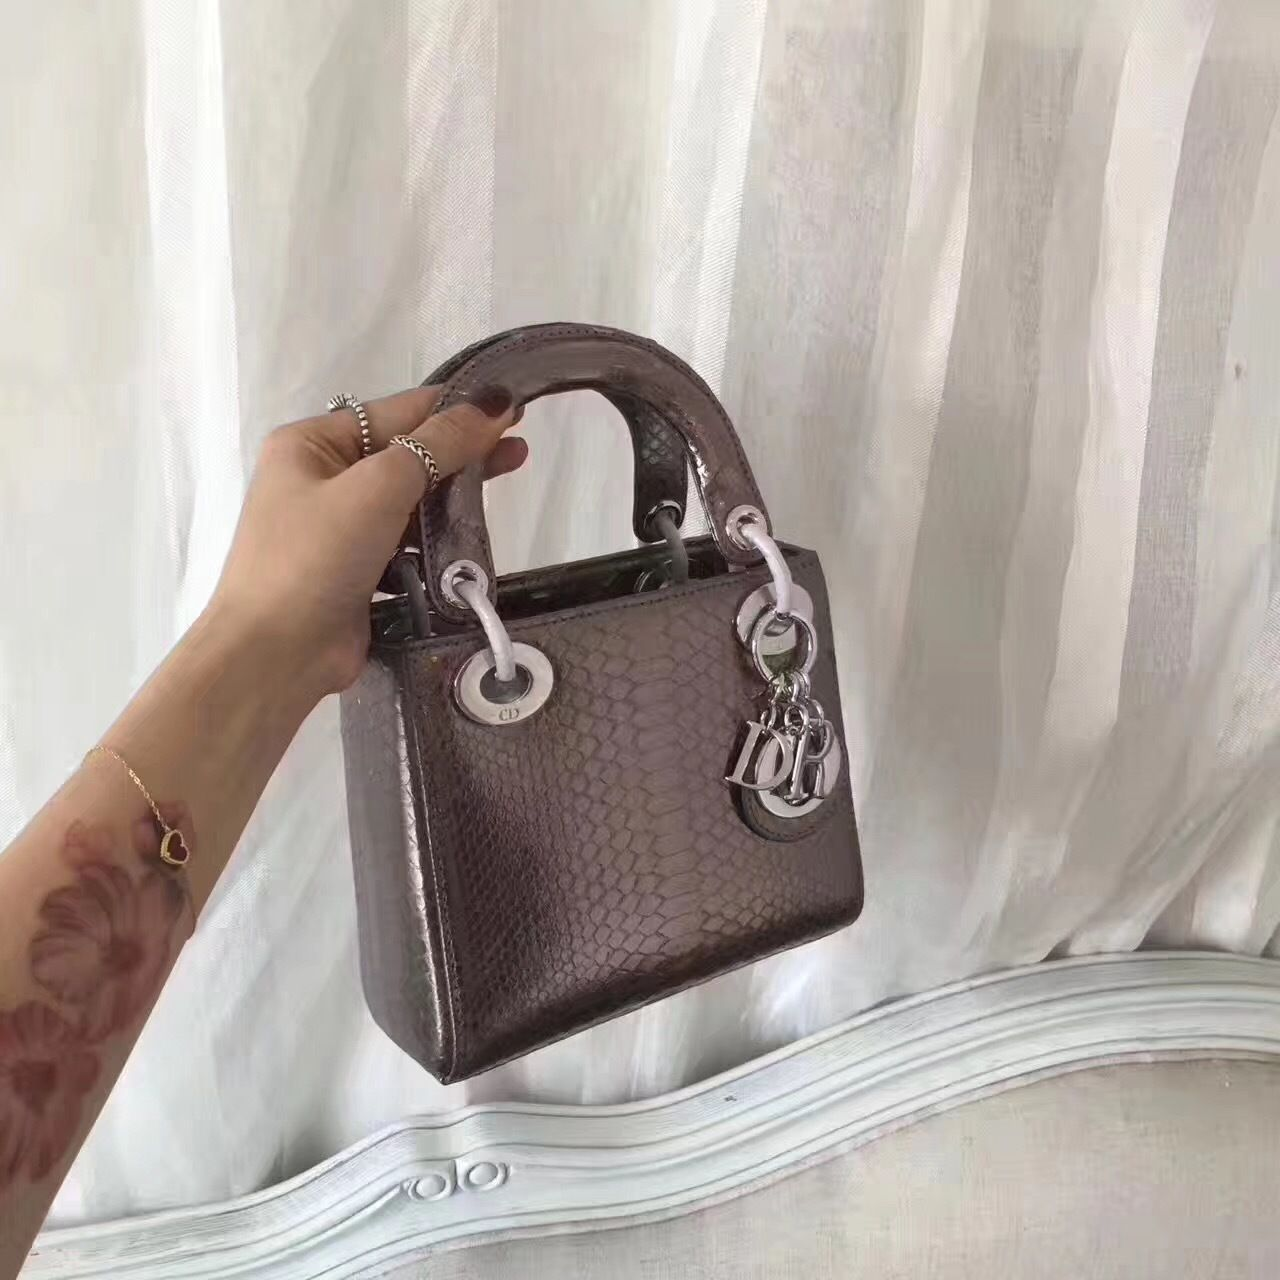 Christian Dior Lady Dior Bag with Python Skin 17cm Silver Hardware Lambskin  Leather Cruise 2017 Collection 8b7e4671bb927